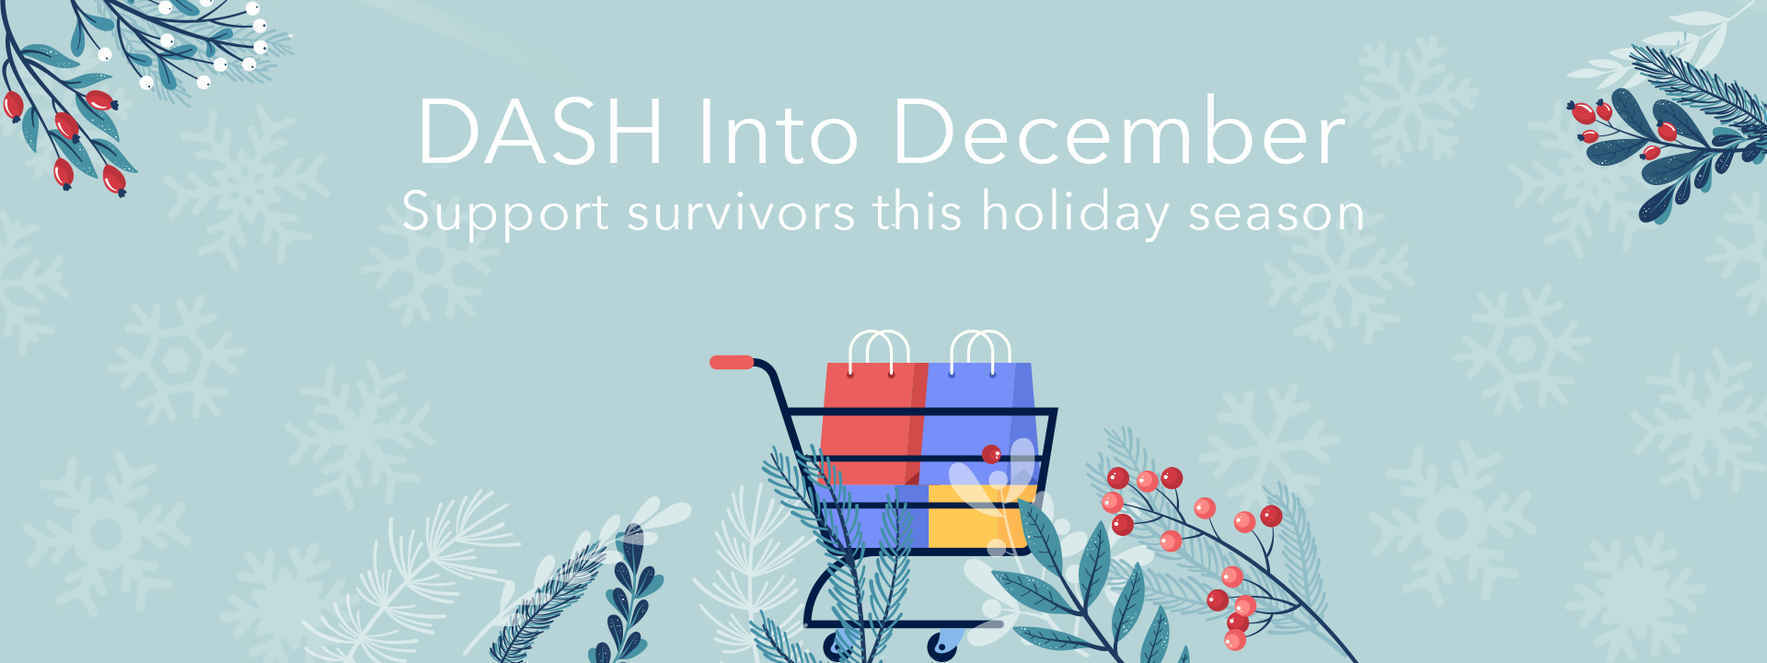 Give to DASH today to secure the safety of survivors and their families image